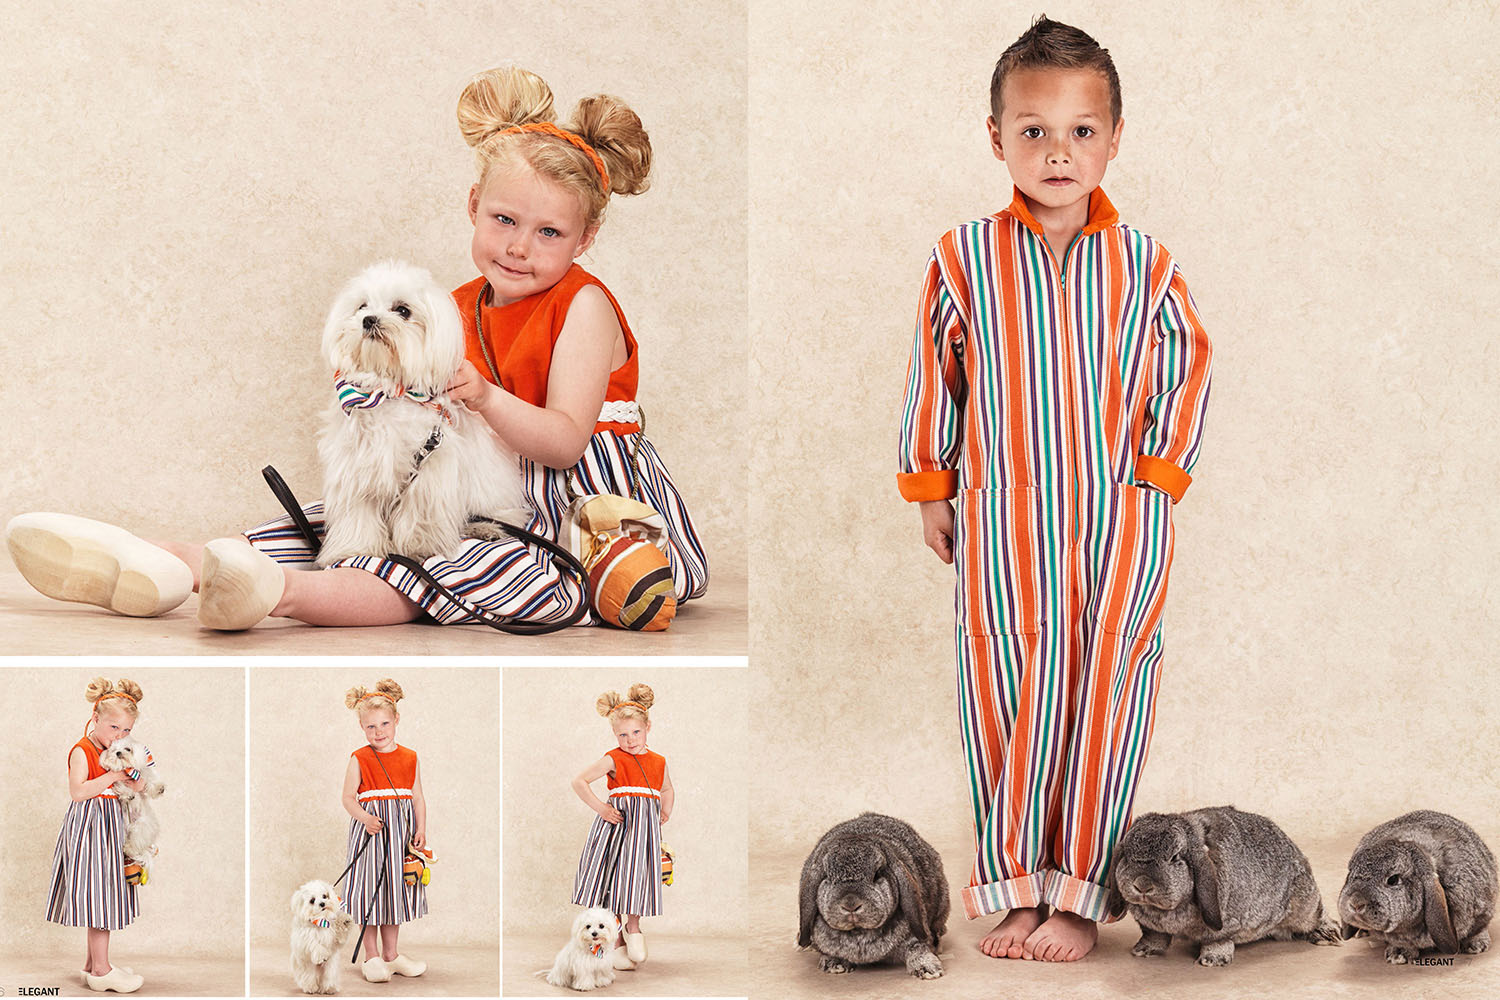 Salvador Pozo Lookbook Photography for Jow Junior